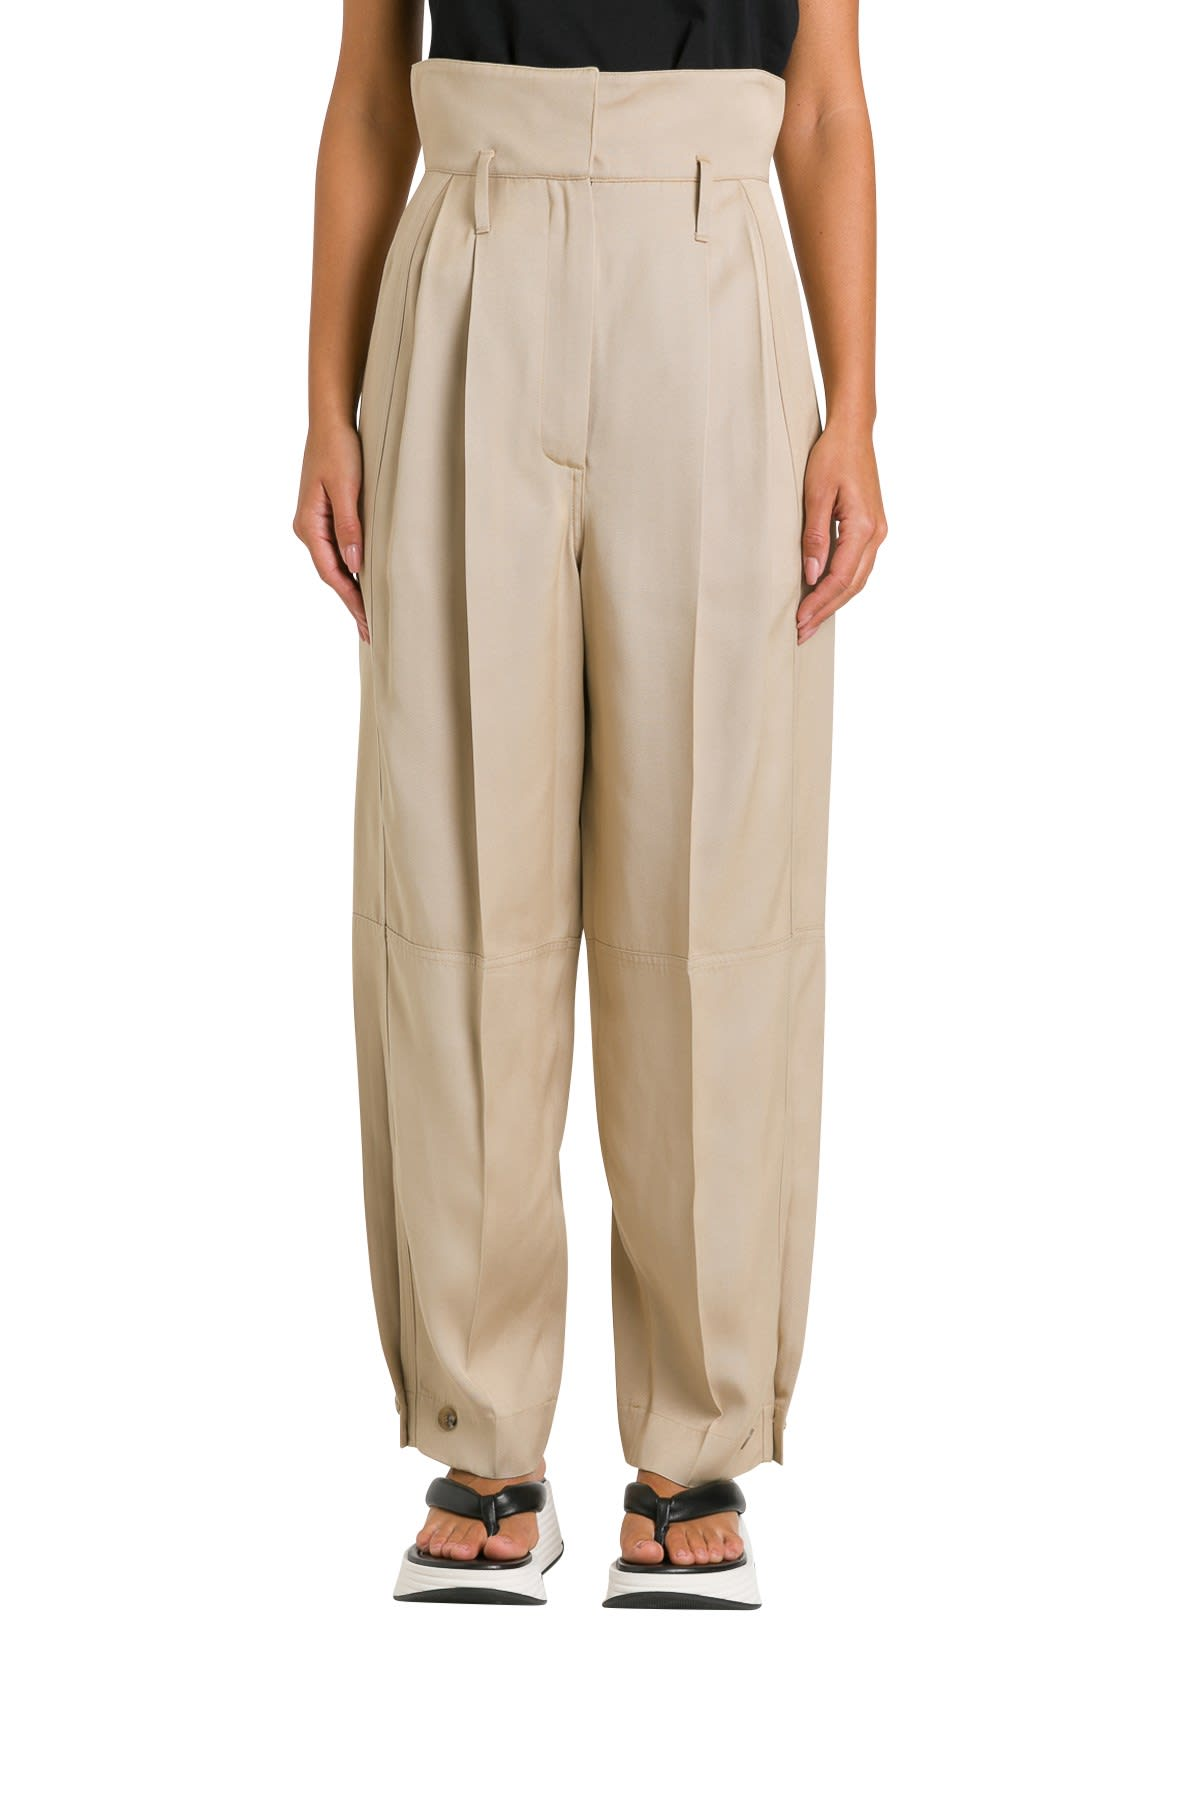 Givenchy High-rise Army Pants